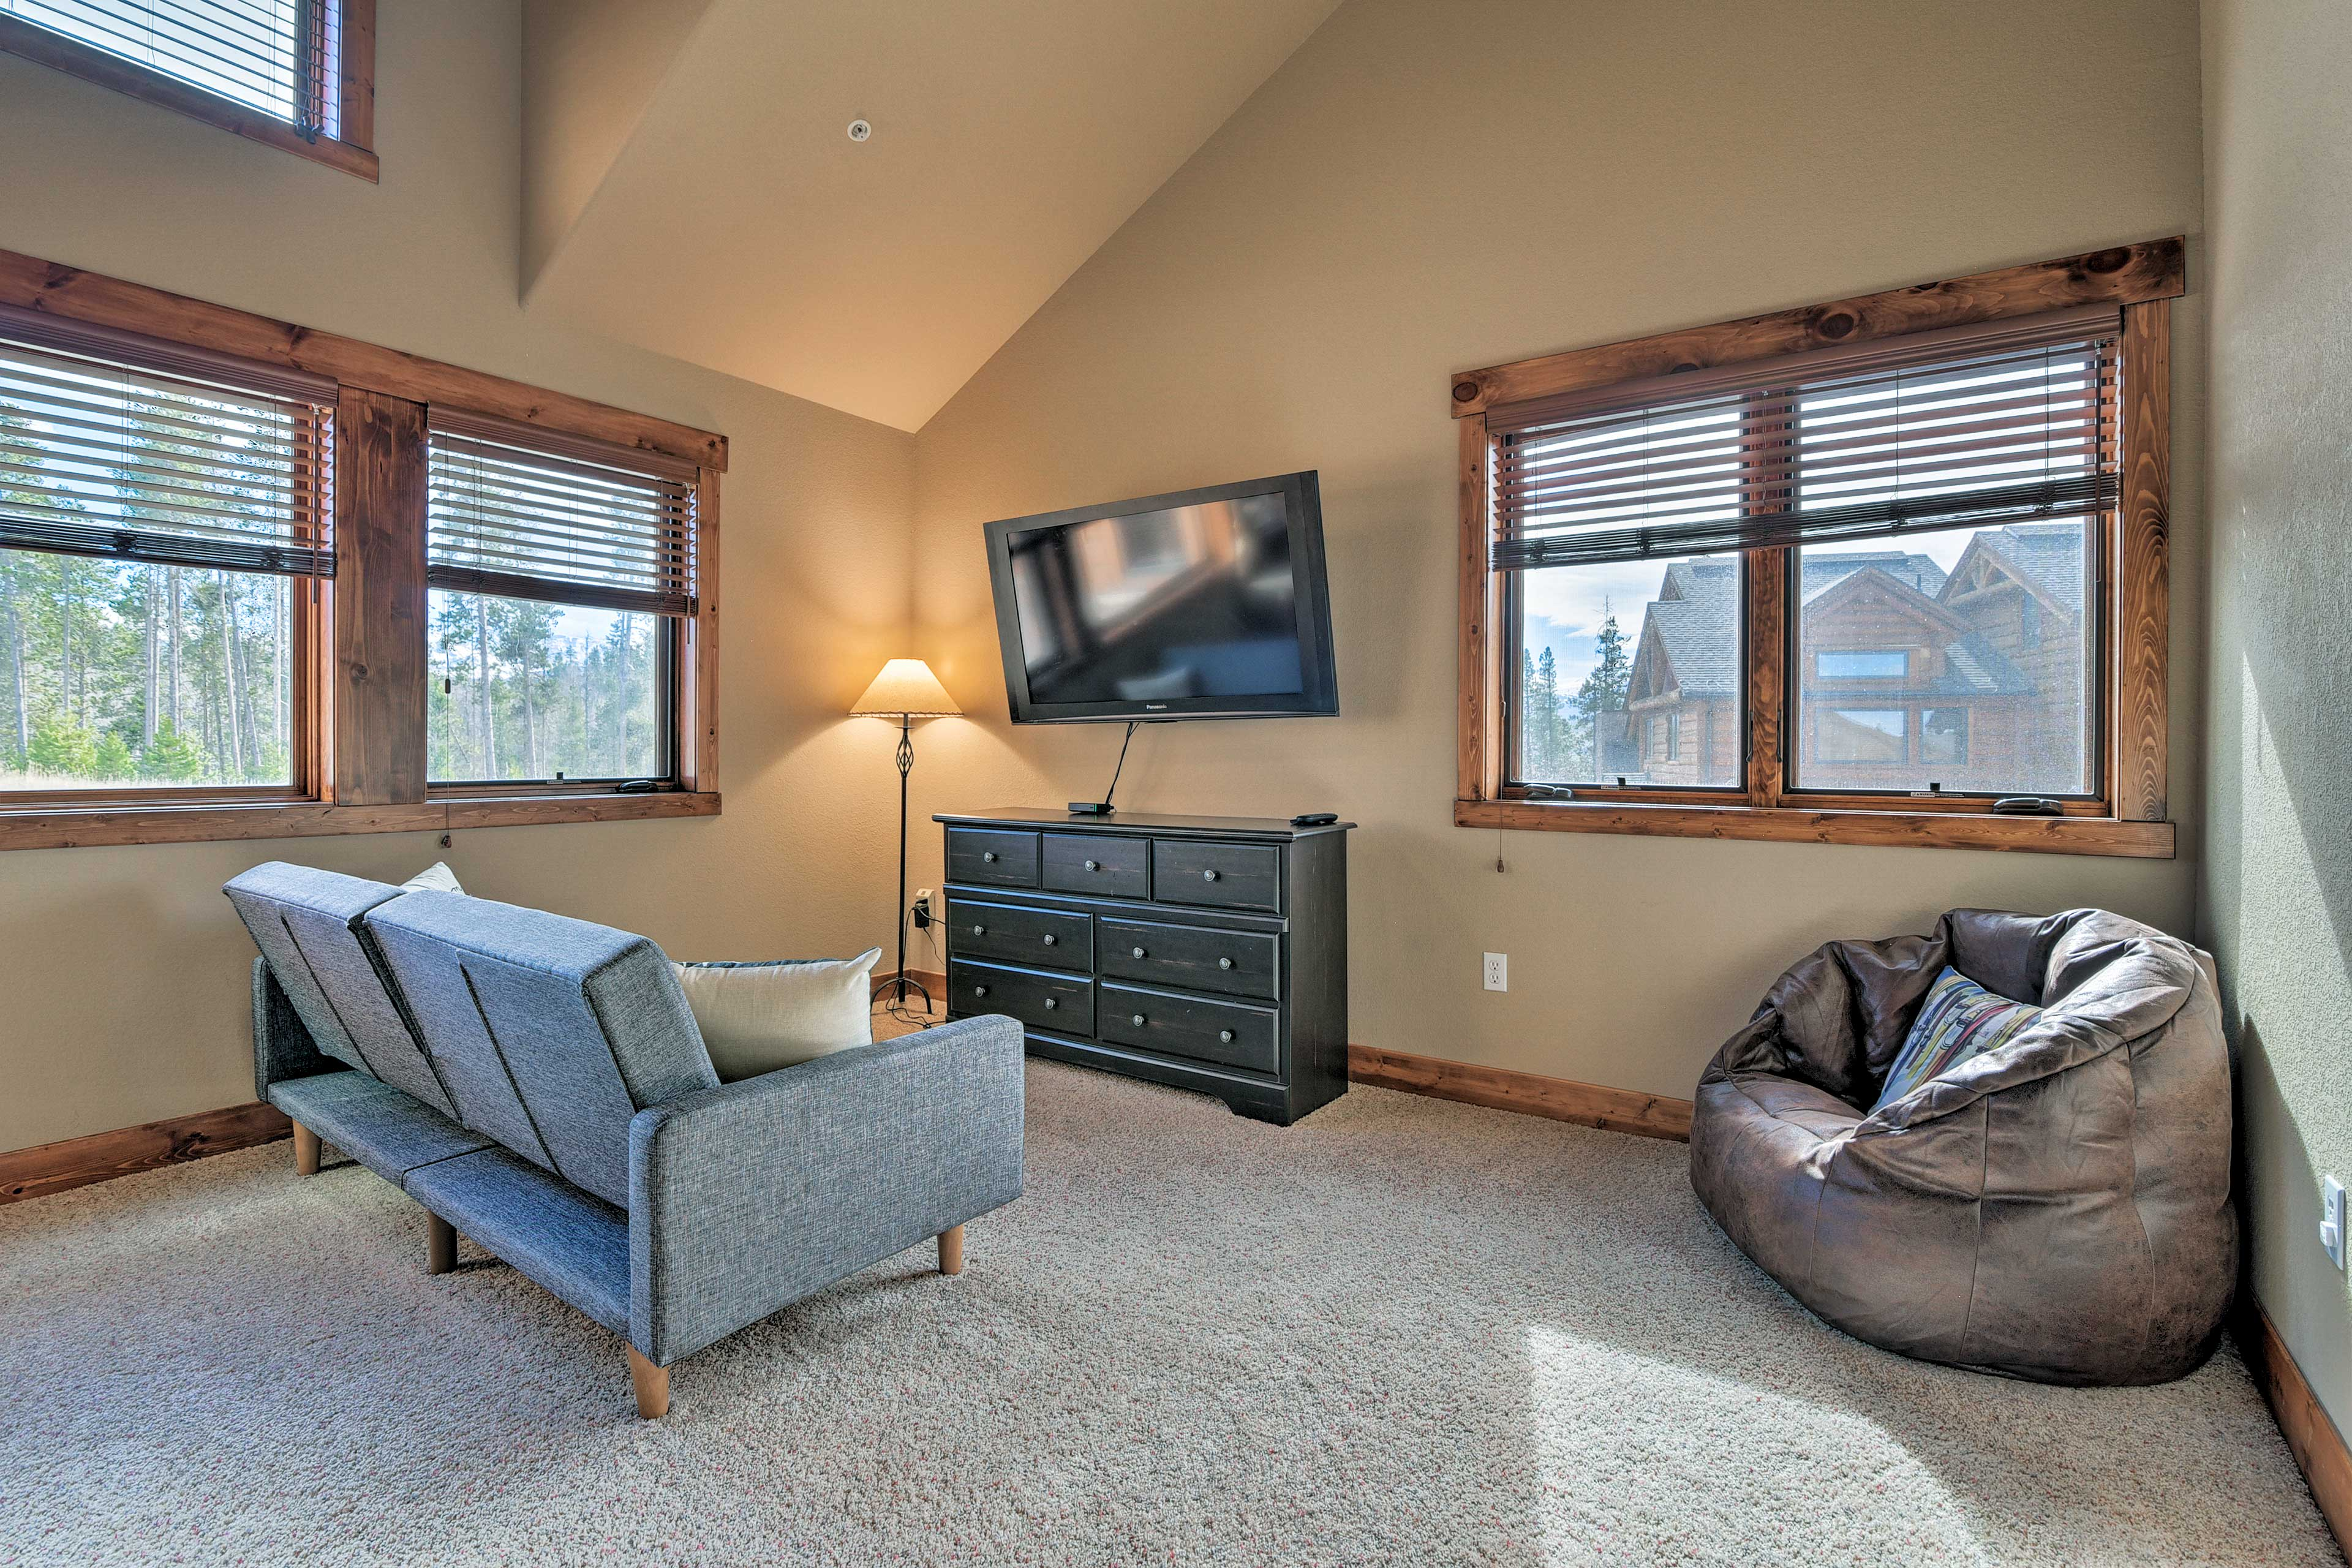 This room is complete with a futon, flat-screen TV, and bean bag chair.